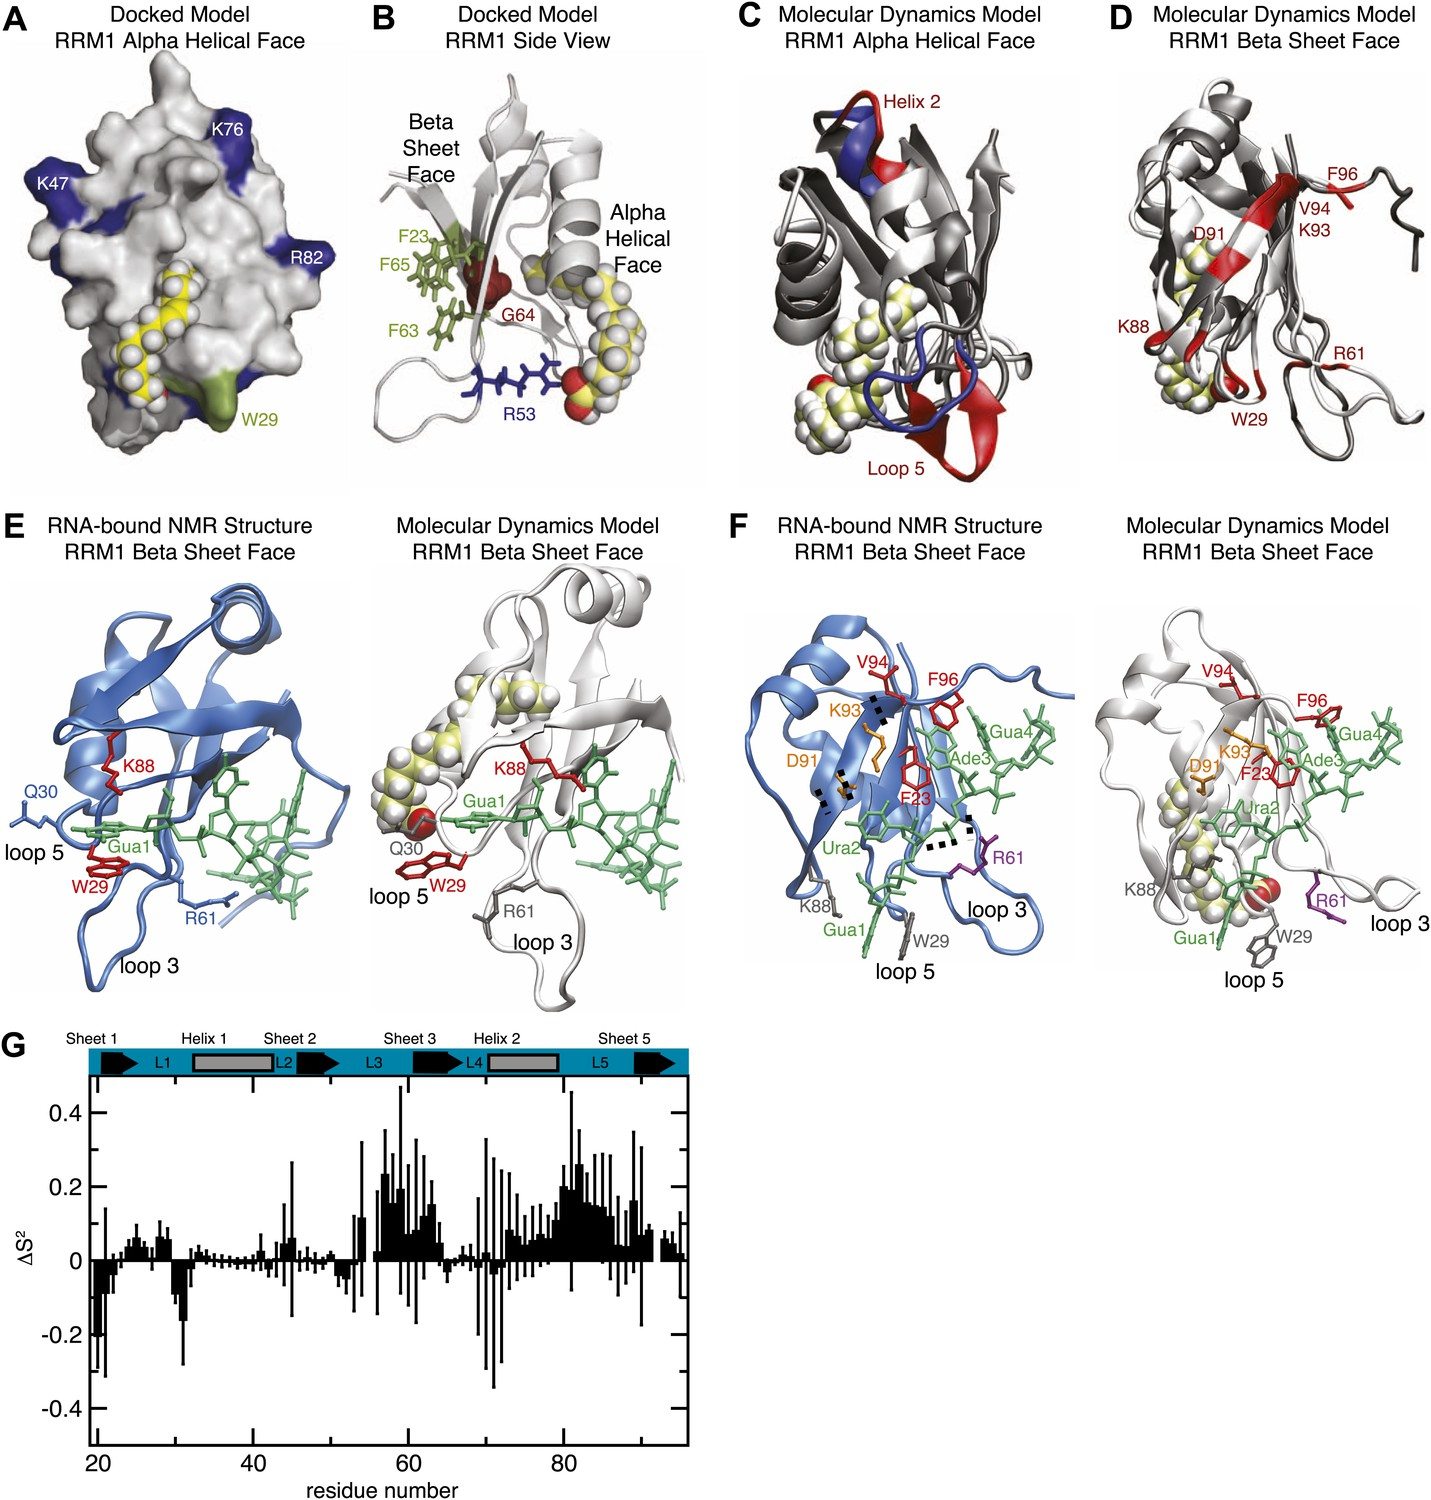 Allosteric inhibition of a stem cell RNA-binding protein by an